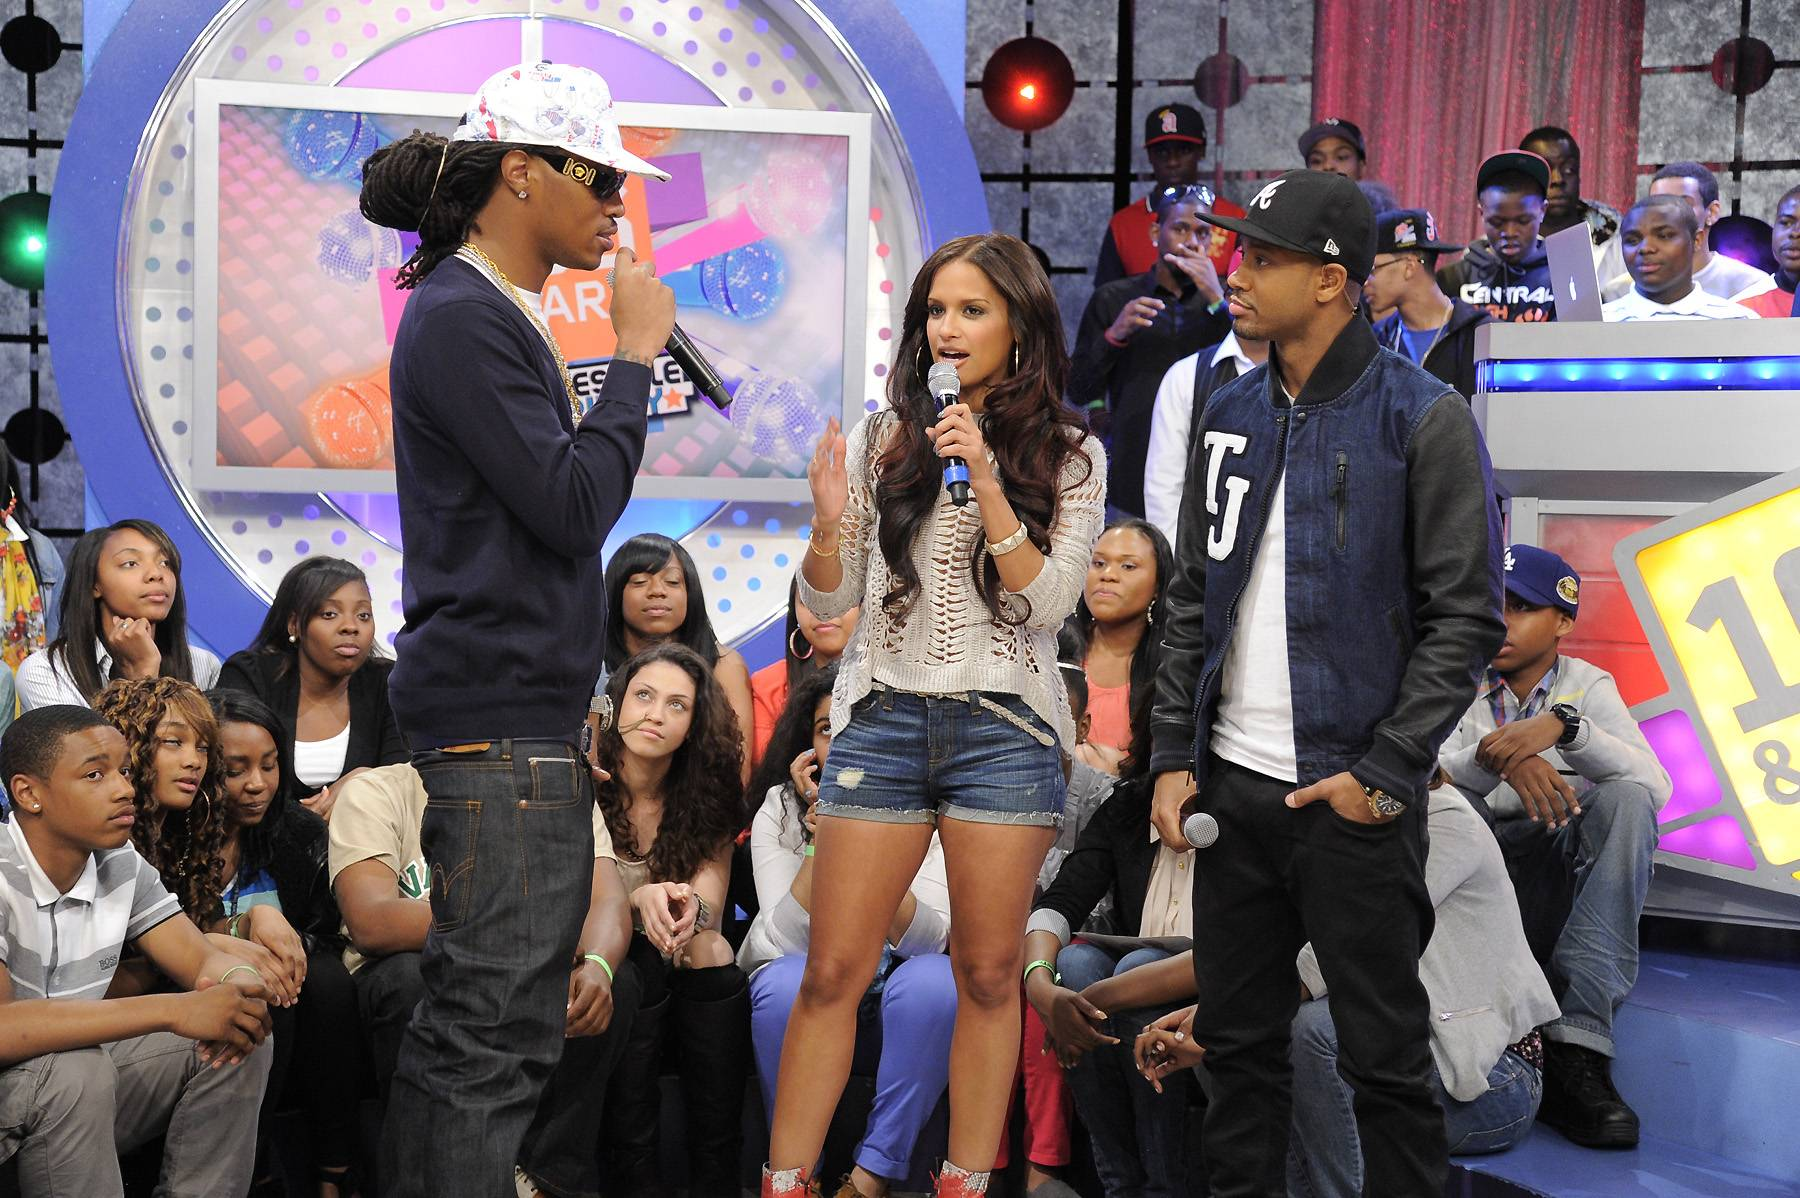 040912-shows-106-park-freestyle-friday-future-rocsi-terrence-j.jpg